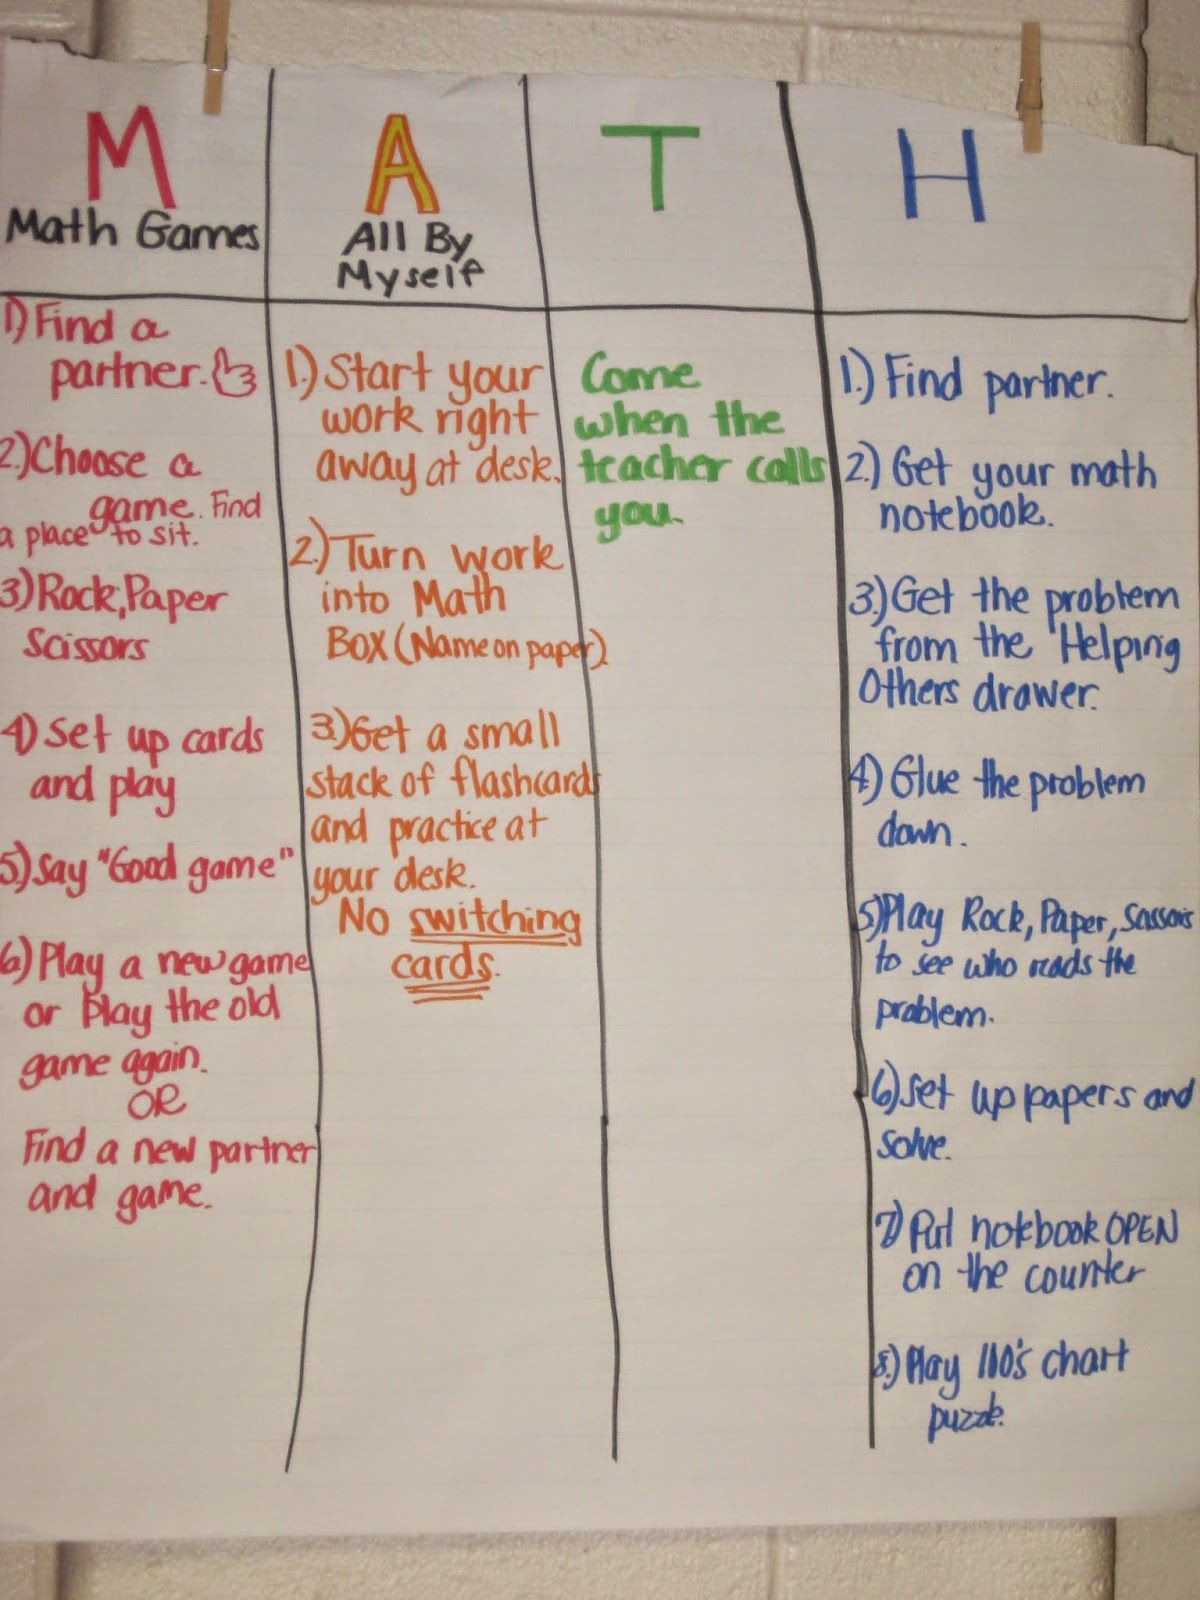 10 Things Your Students MUST Know Before Playing Math Games | Maths ...